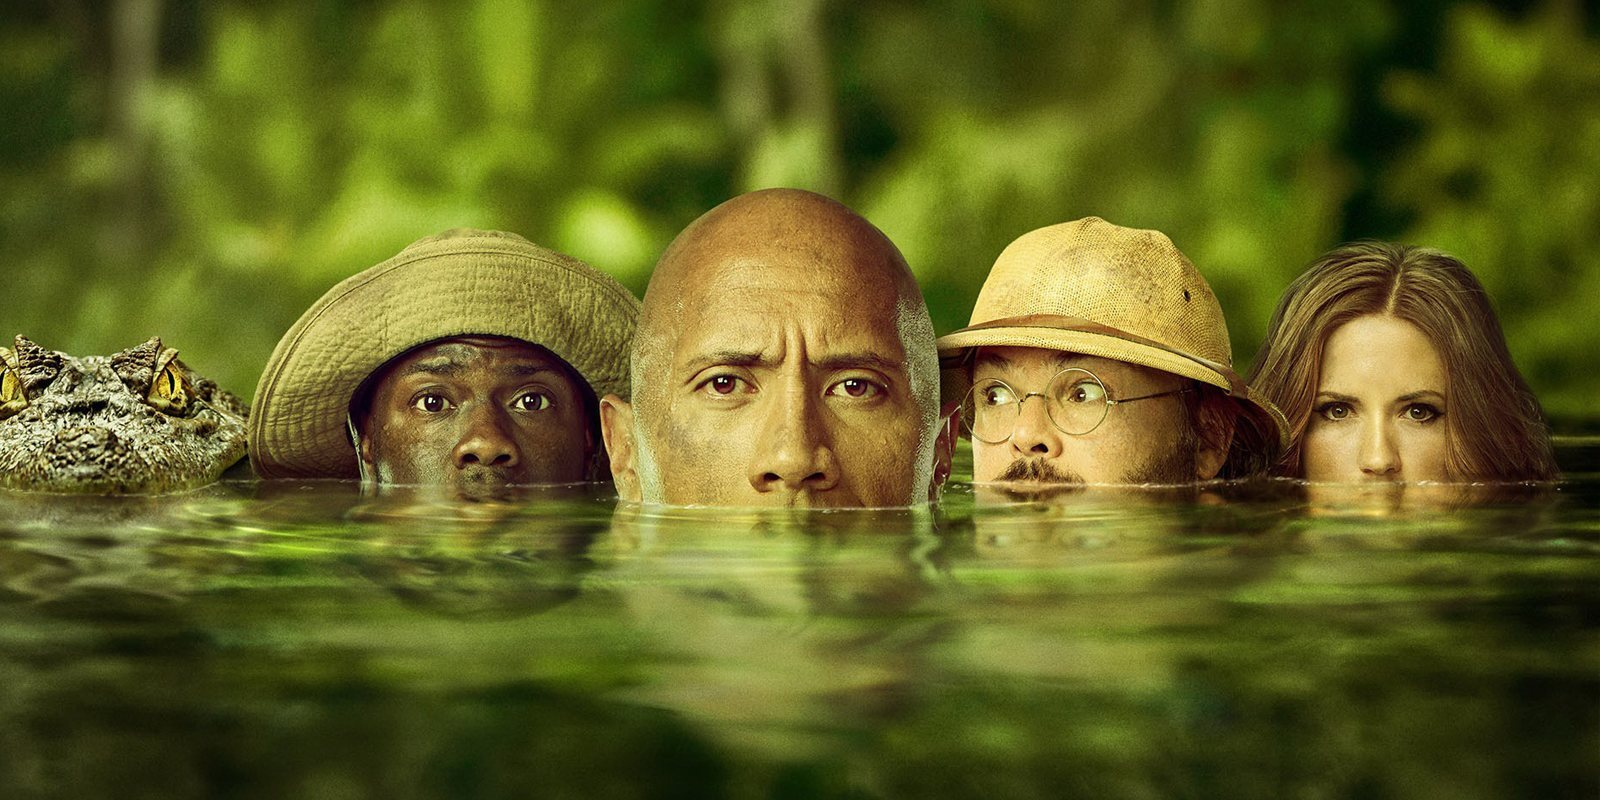 La secuela Jumanji: The Next Level de Sony revela primer tráiler